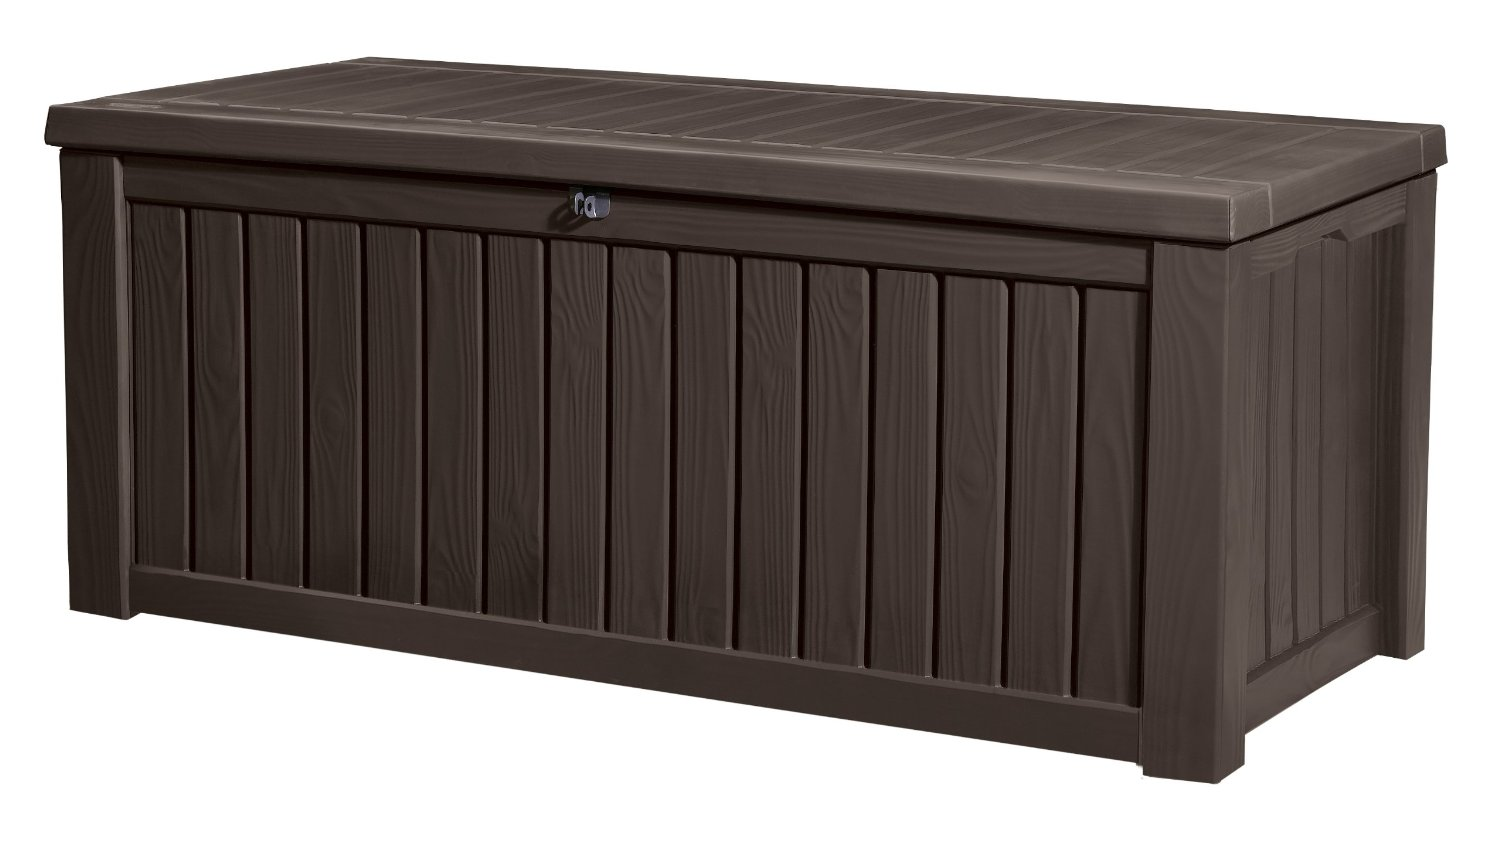 Keter 150 Gallon Deck Box | Rockwood Storage | Keter Rockwood Deck Box